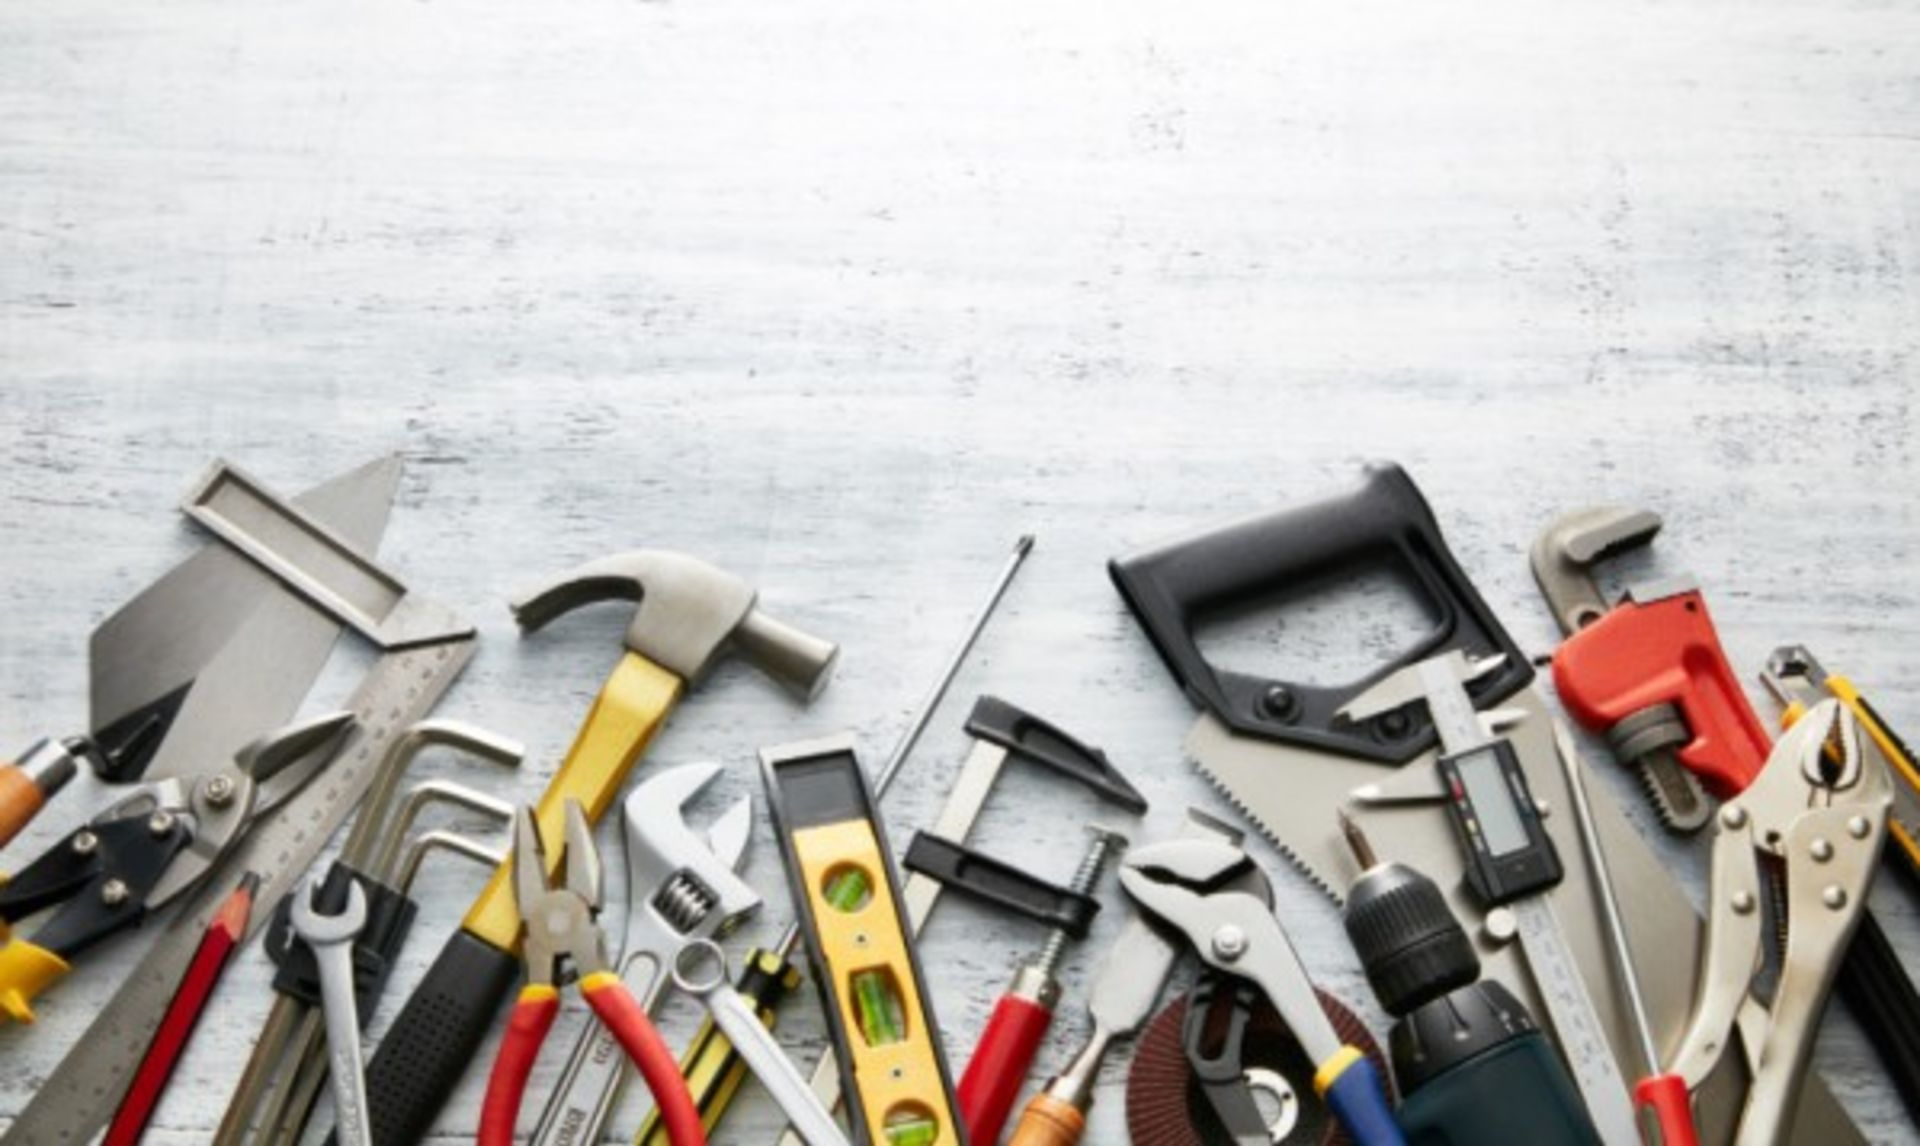 MUST-HAVE TOOLS FOR HOMEOWNERS Ryan Boyer